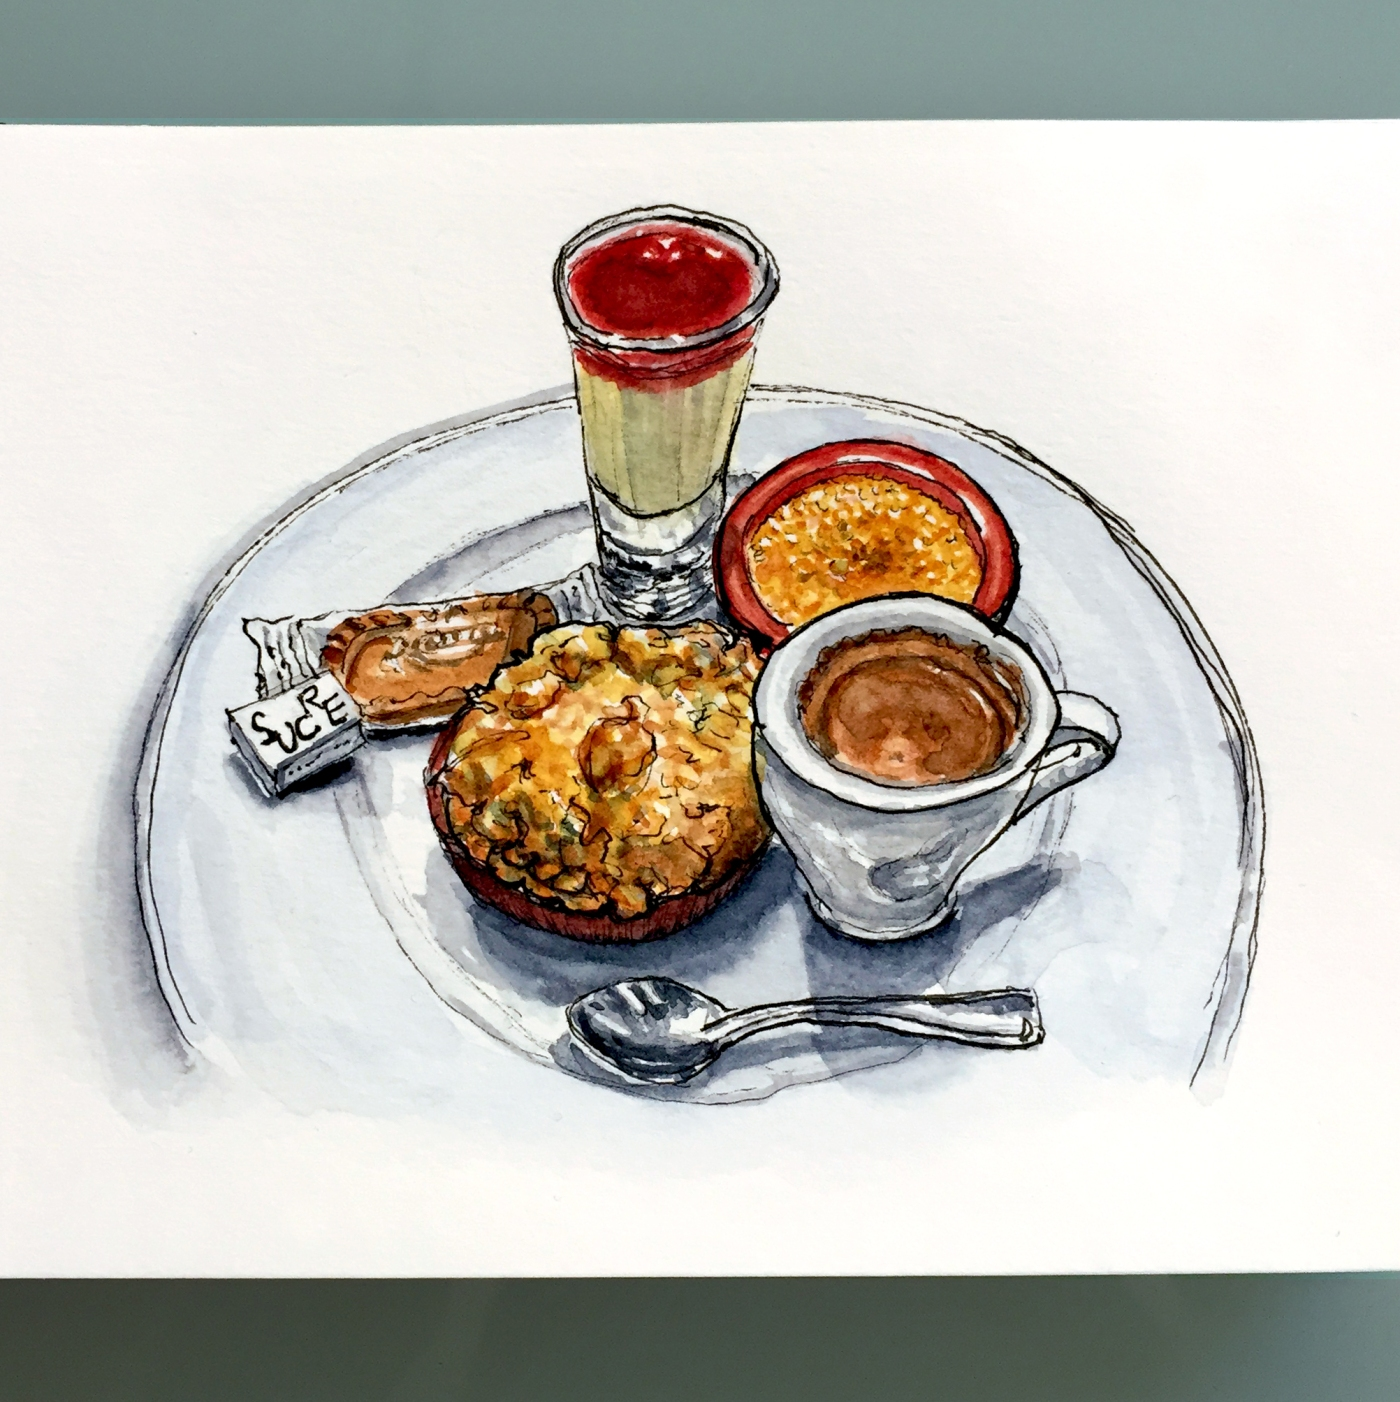 Day 3 - #WorldWatercolorGroup J'Adore Le Café Gourmand Paris France